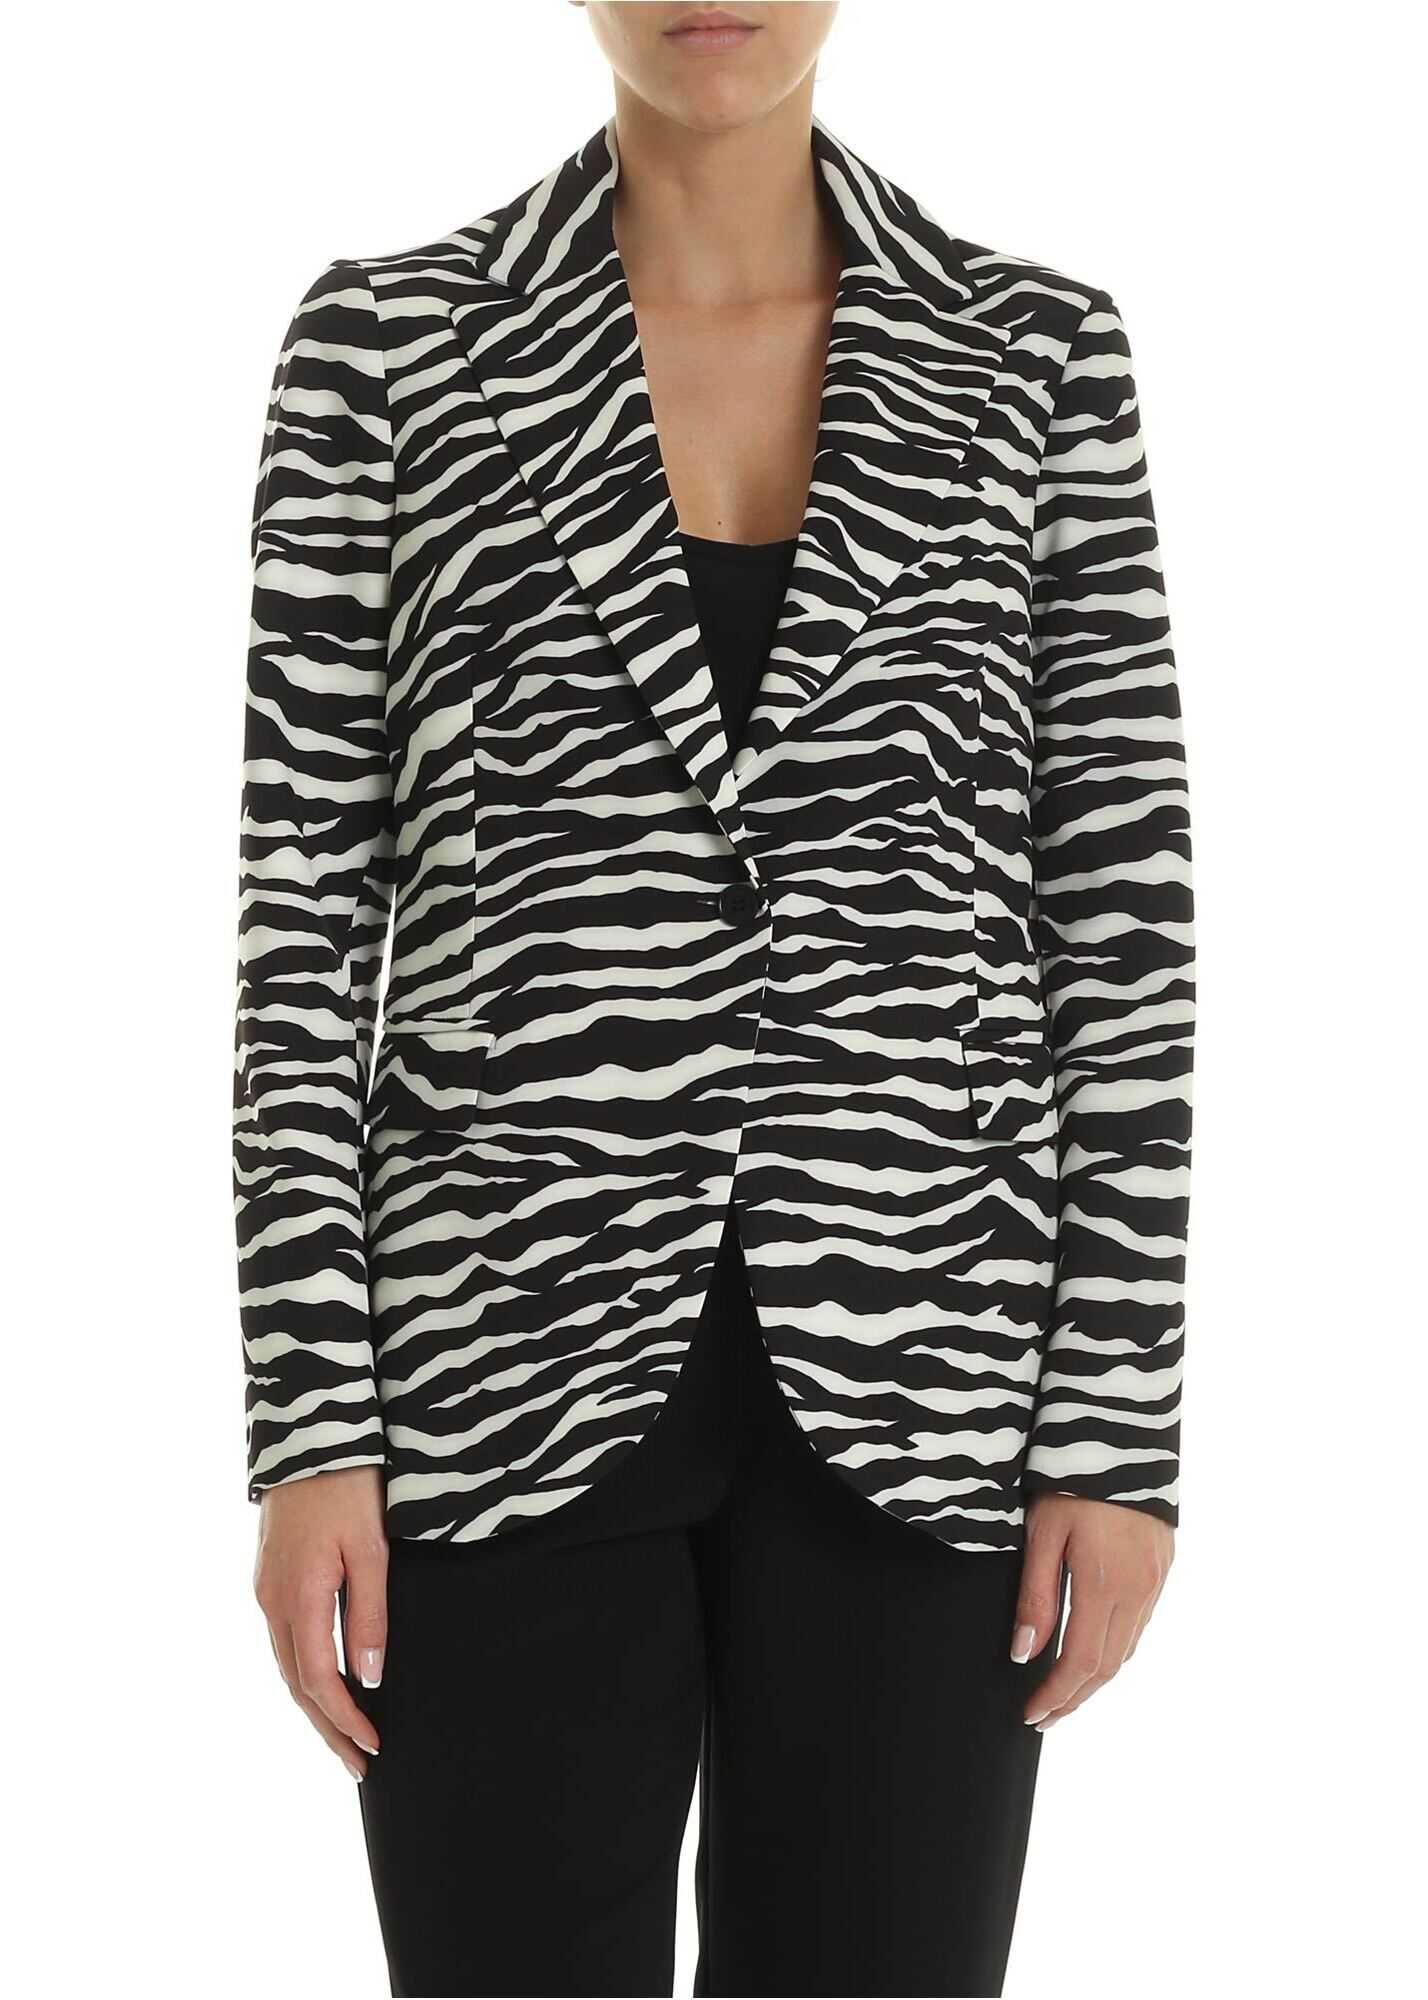 P.A.R.O.S.H. Zebra Printed Single-Breasted Jacket In Black And Ivory Animal print